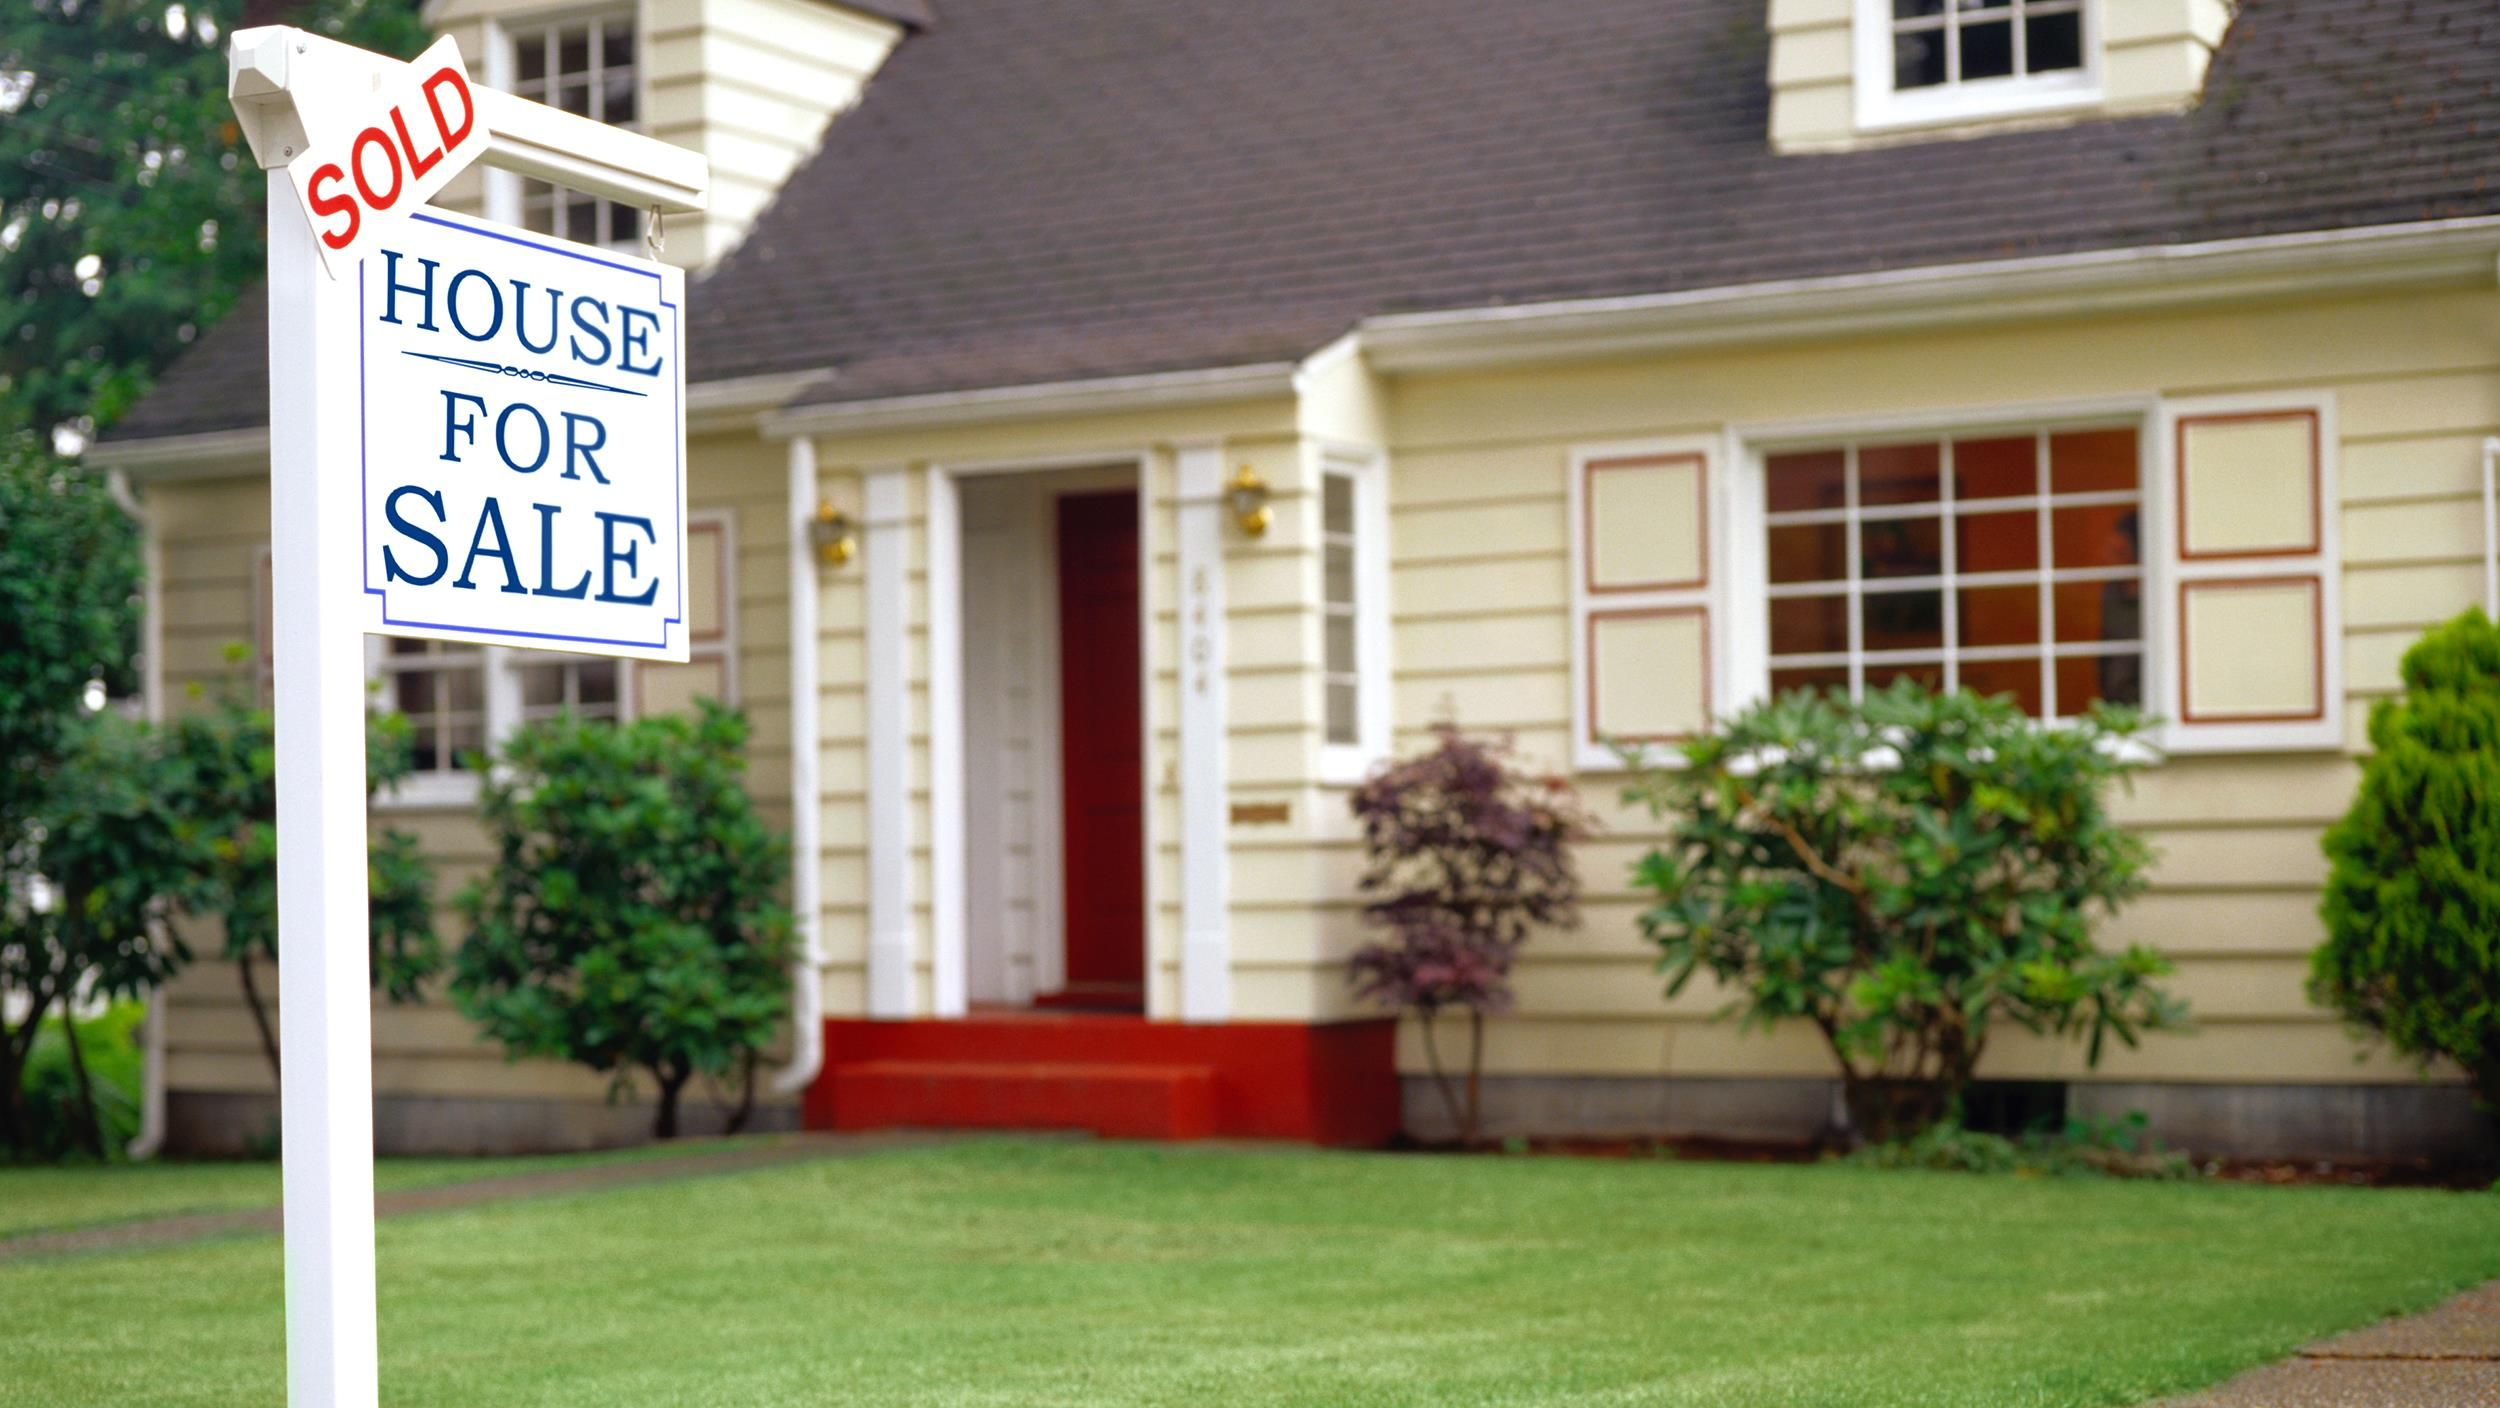 Looking to sell your home? 3 things to do to increase your sale price